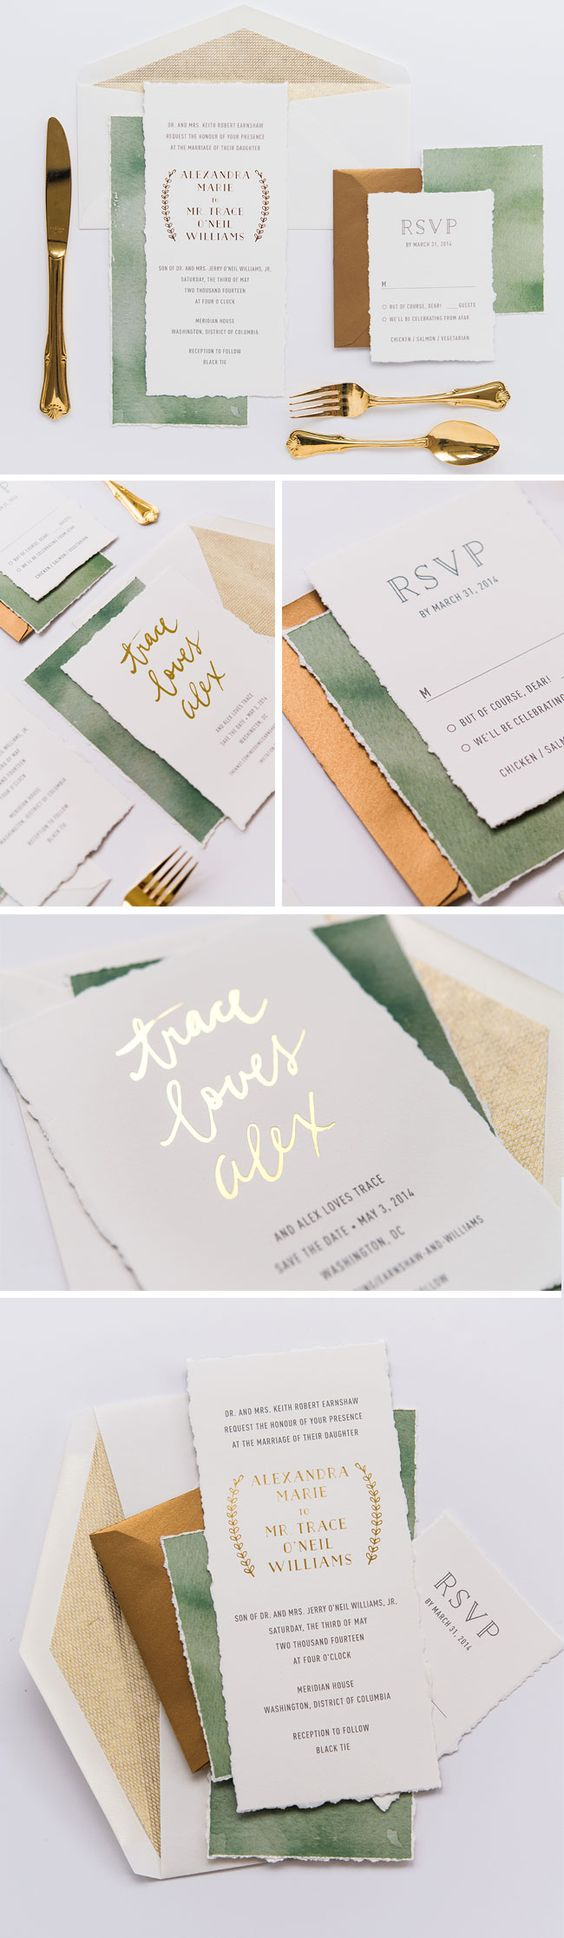 Gold foil + Green Wedding Letterpress invitations | Fab Mood #weddingcolor #colorschemes